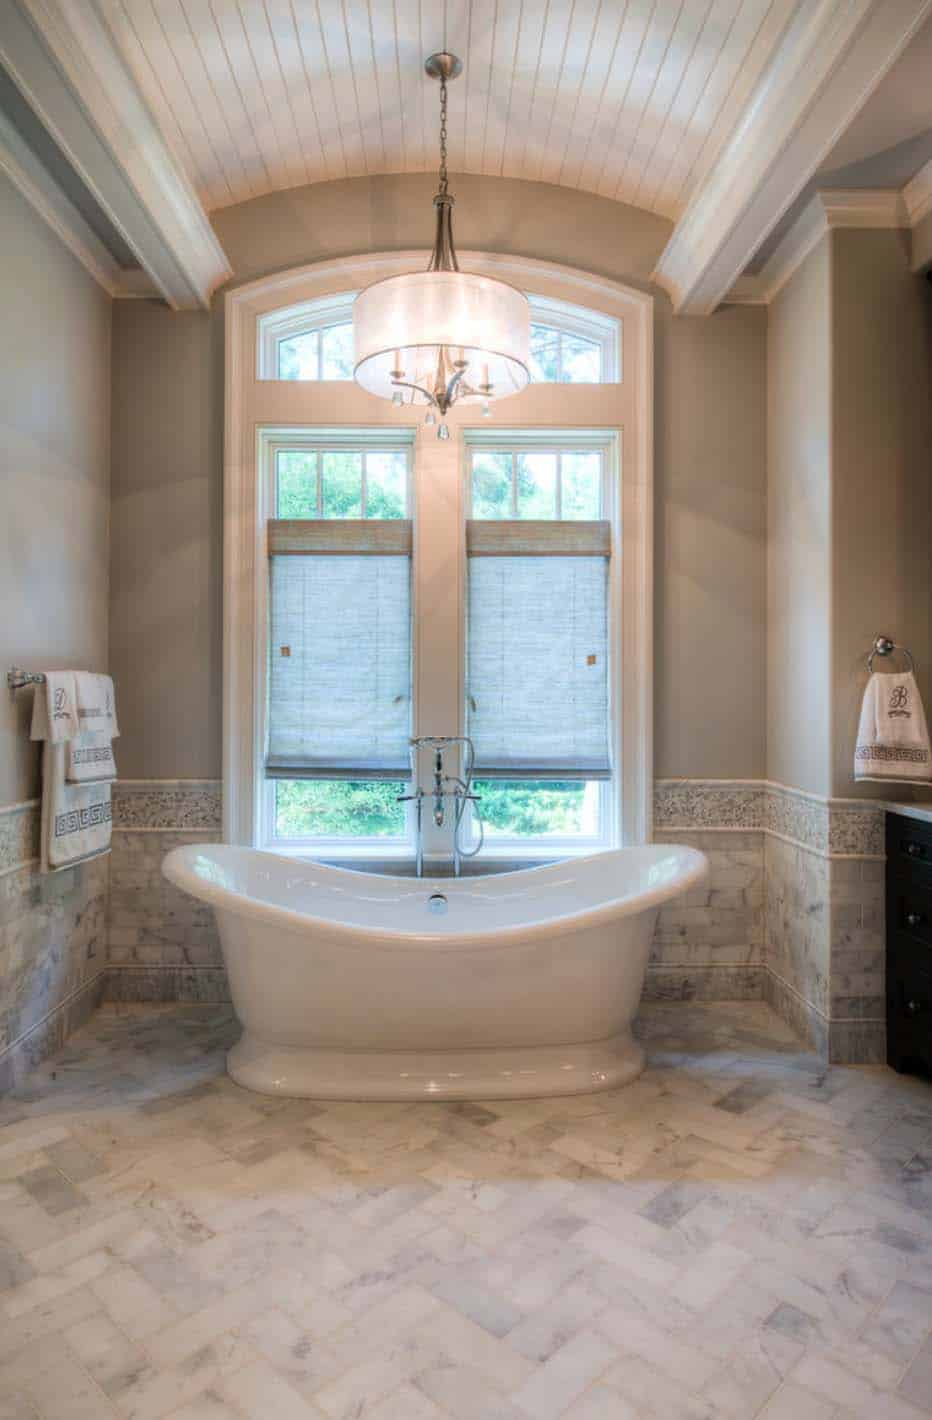 Freestanding-Tubs-Bathroom-Ideas-36-1 Kindesign